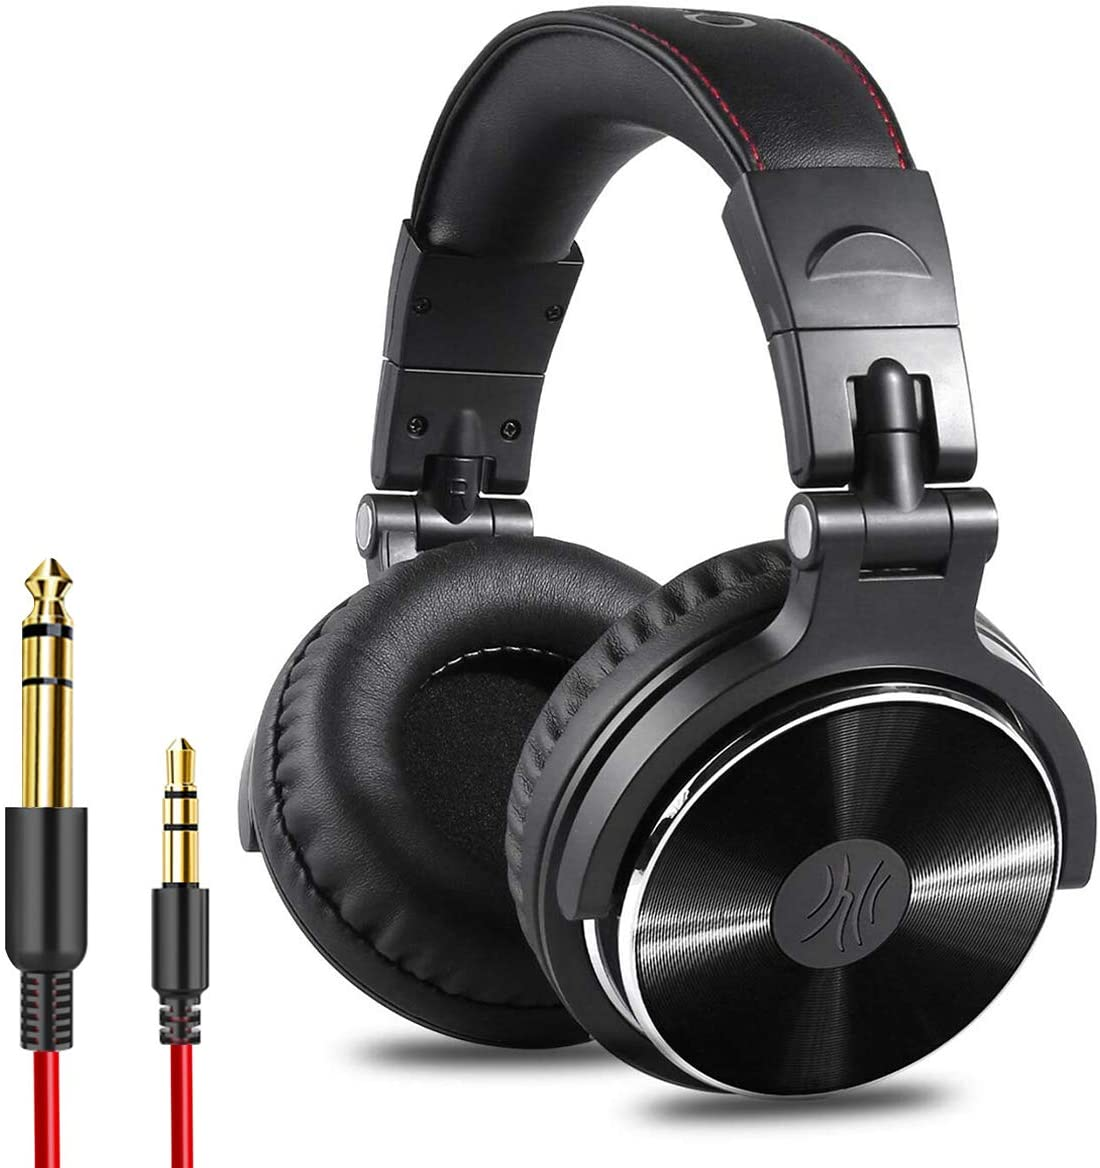 OneOdio Adapter-Free Closed Back Over Ear DJ Stereo Monitor Headphones, Professional Studio Monitor & Mixing, Telescopic Arms with